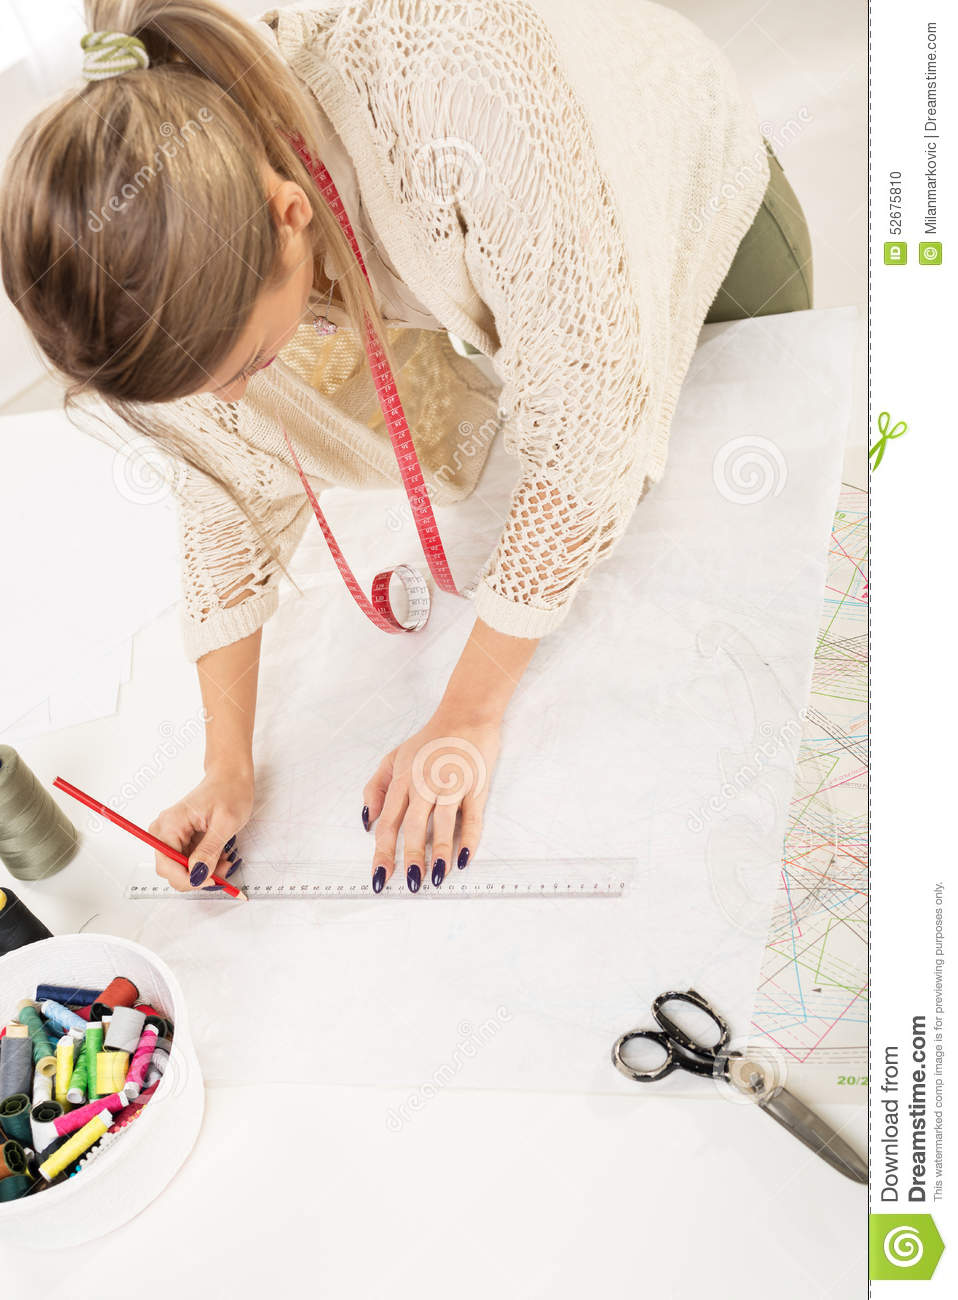 Fashion Designer With Sewing Pattern Stock Photo - Image of material ...